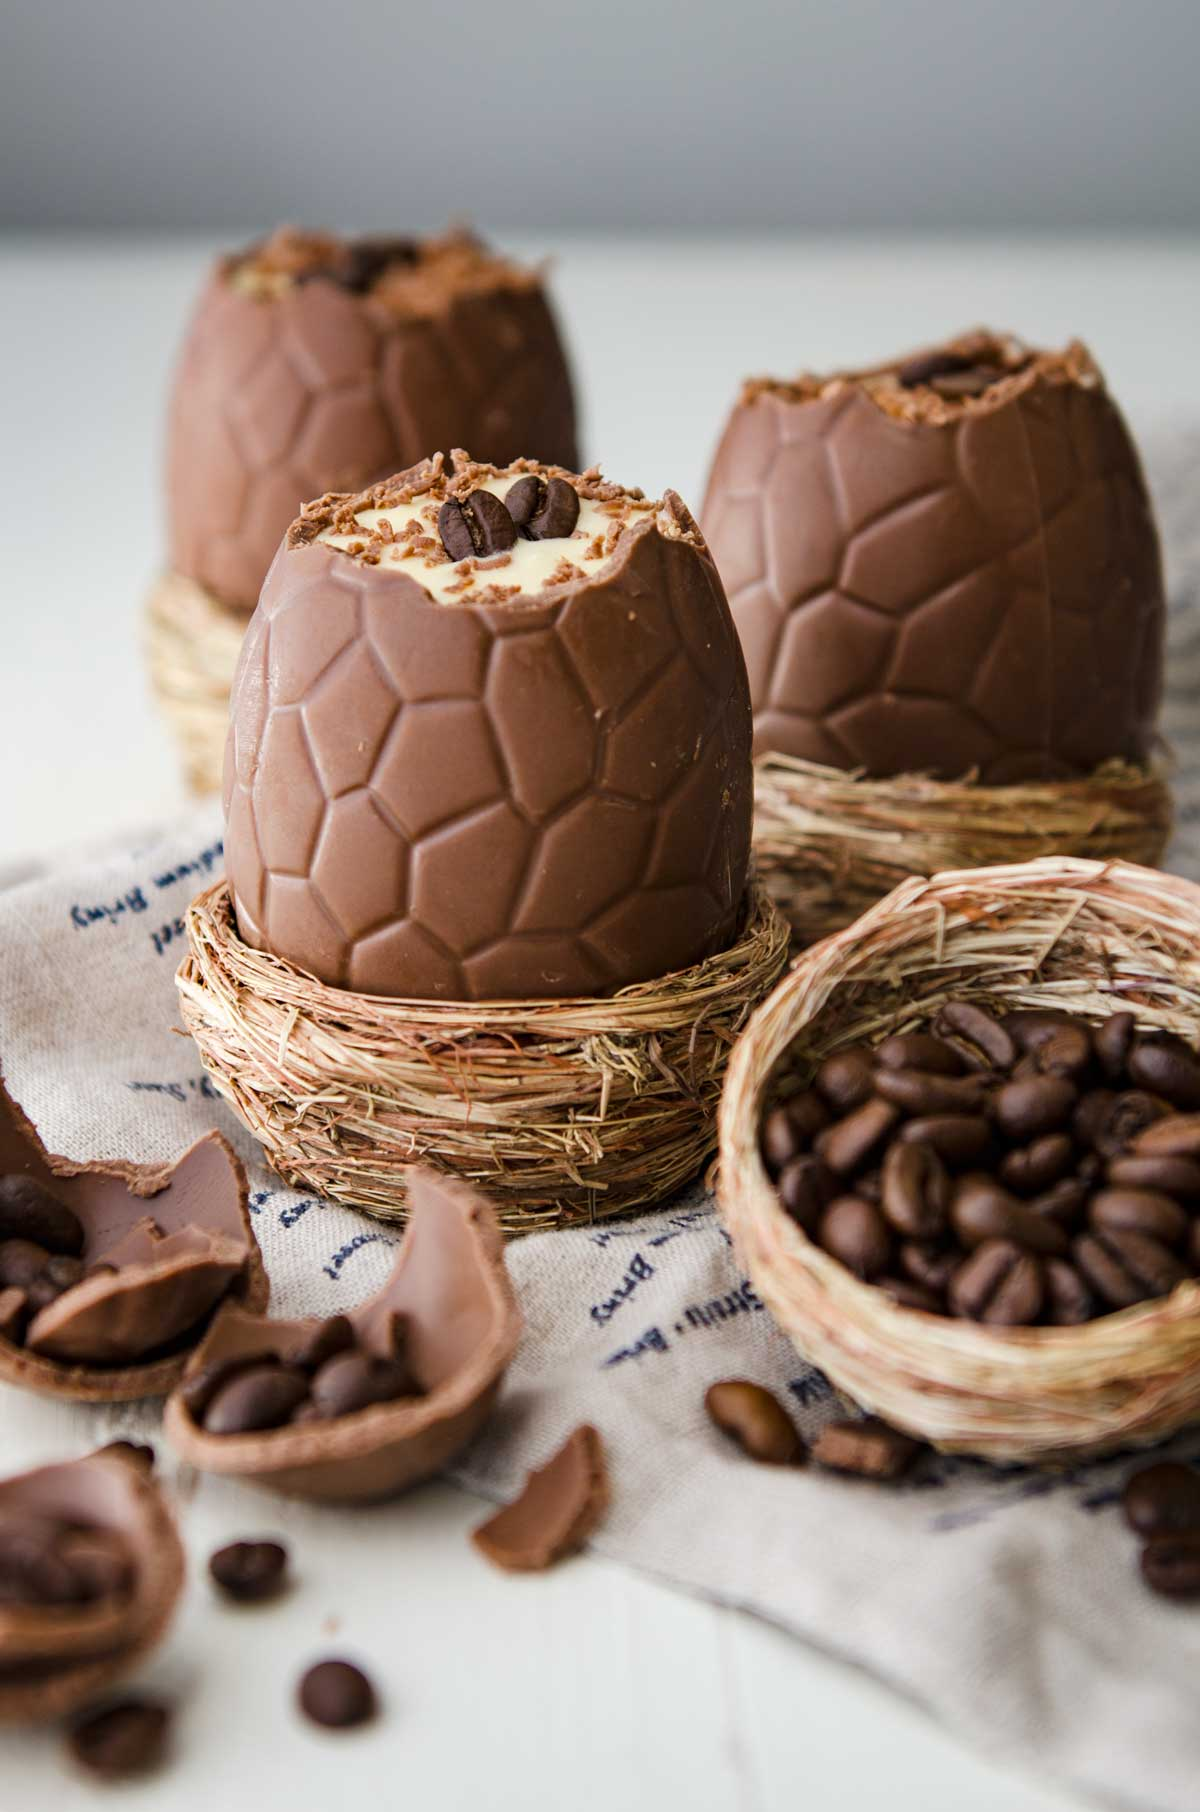 Tiramisù Filled Easter Eggs | Chew Town Food Blog